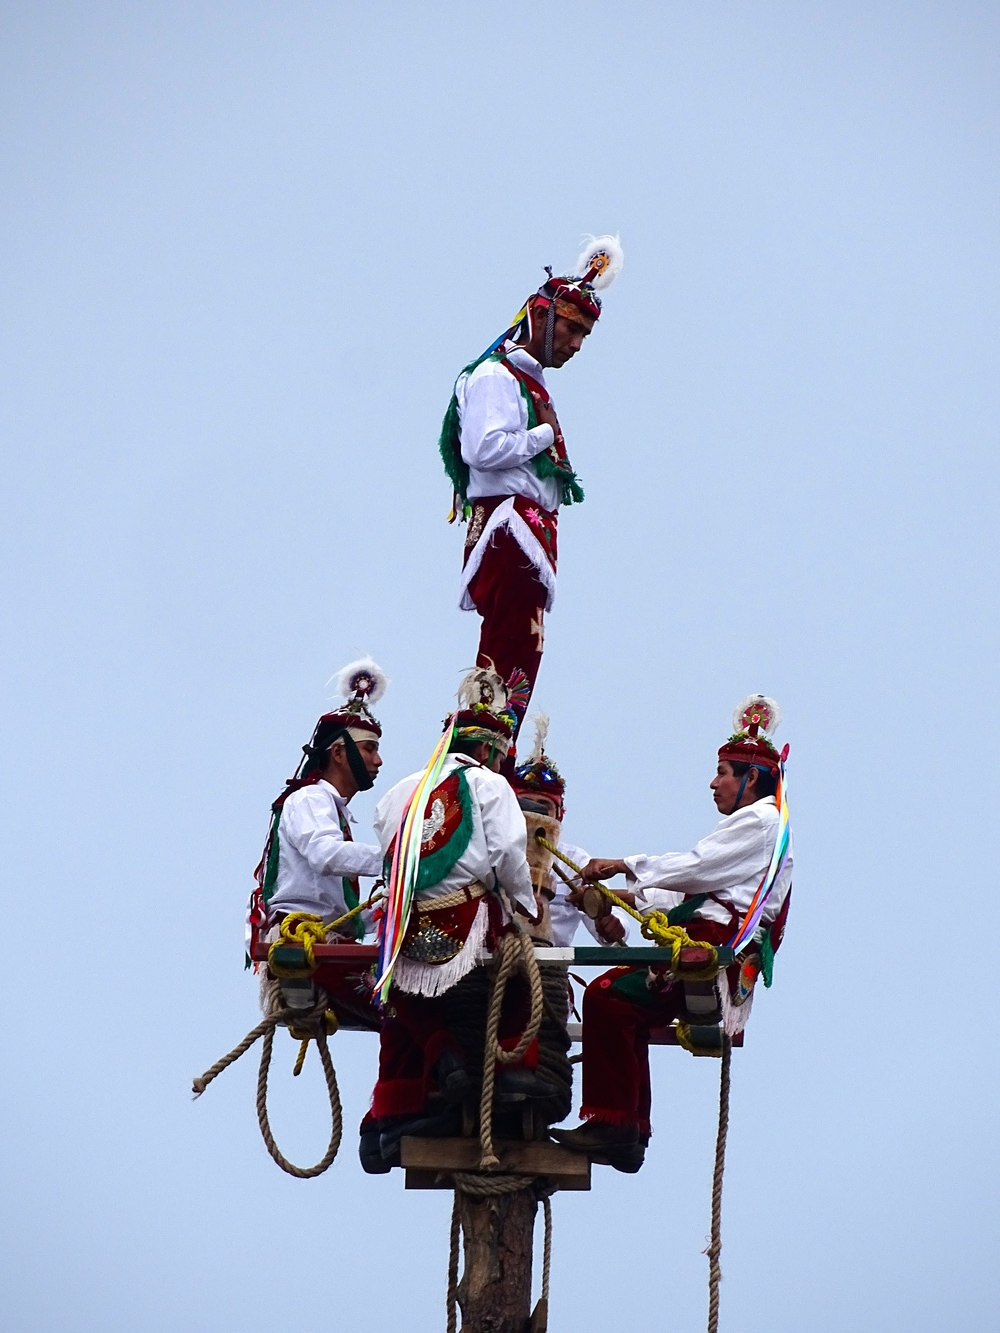 Voladores (Flying Men!)